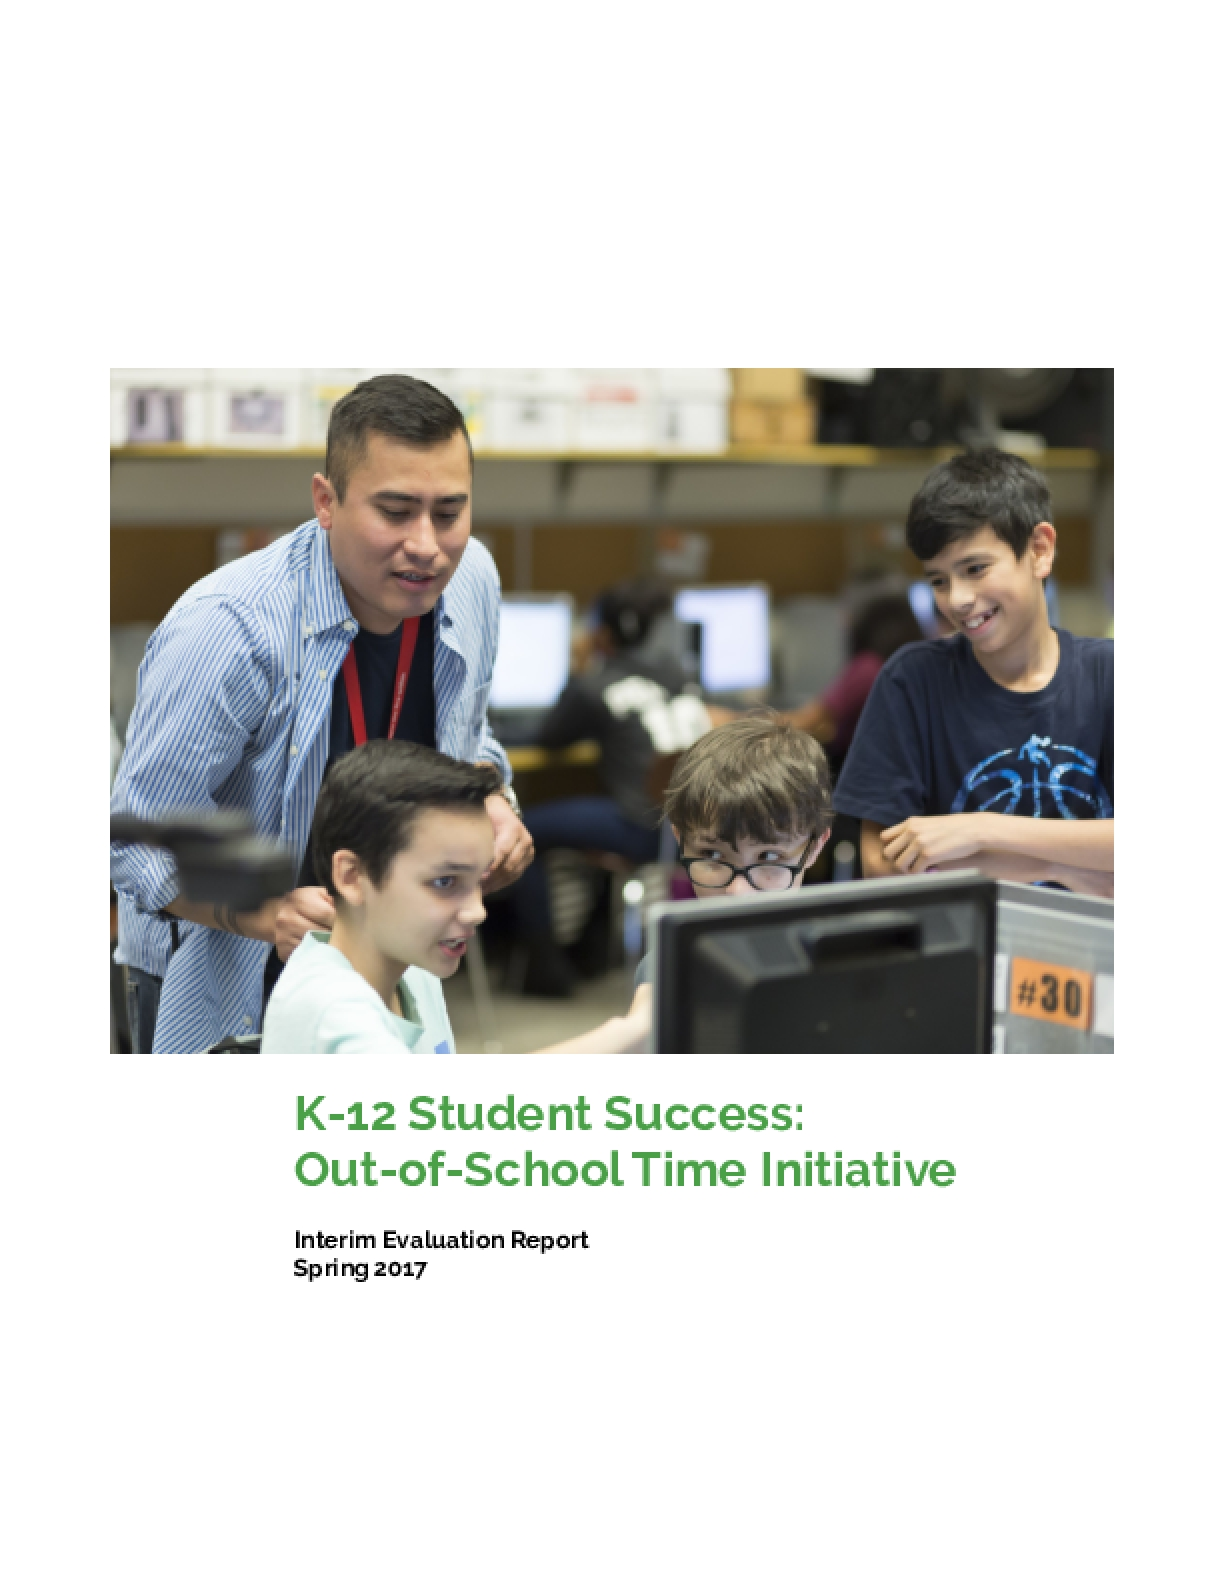 K-12 Student Success: Out-of-School Time Initiative Report